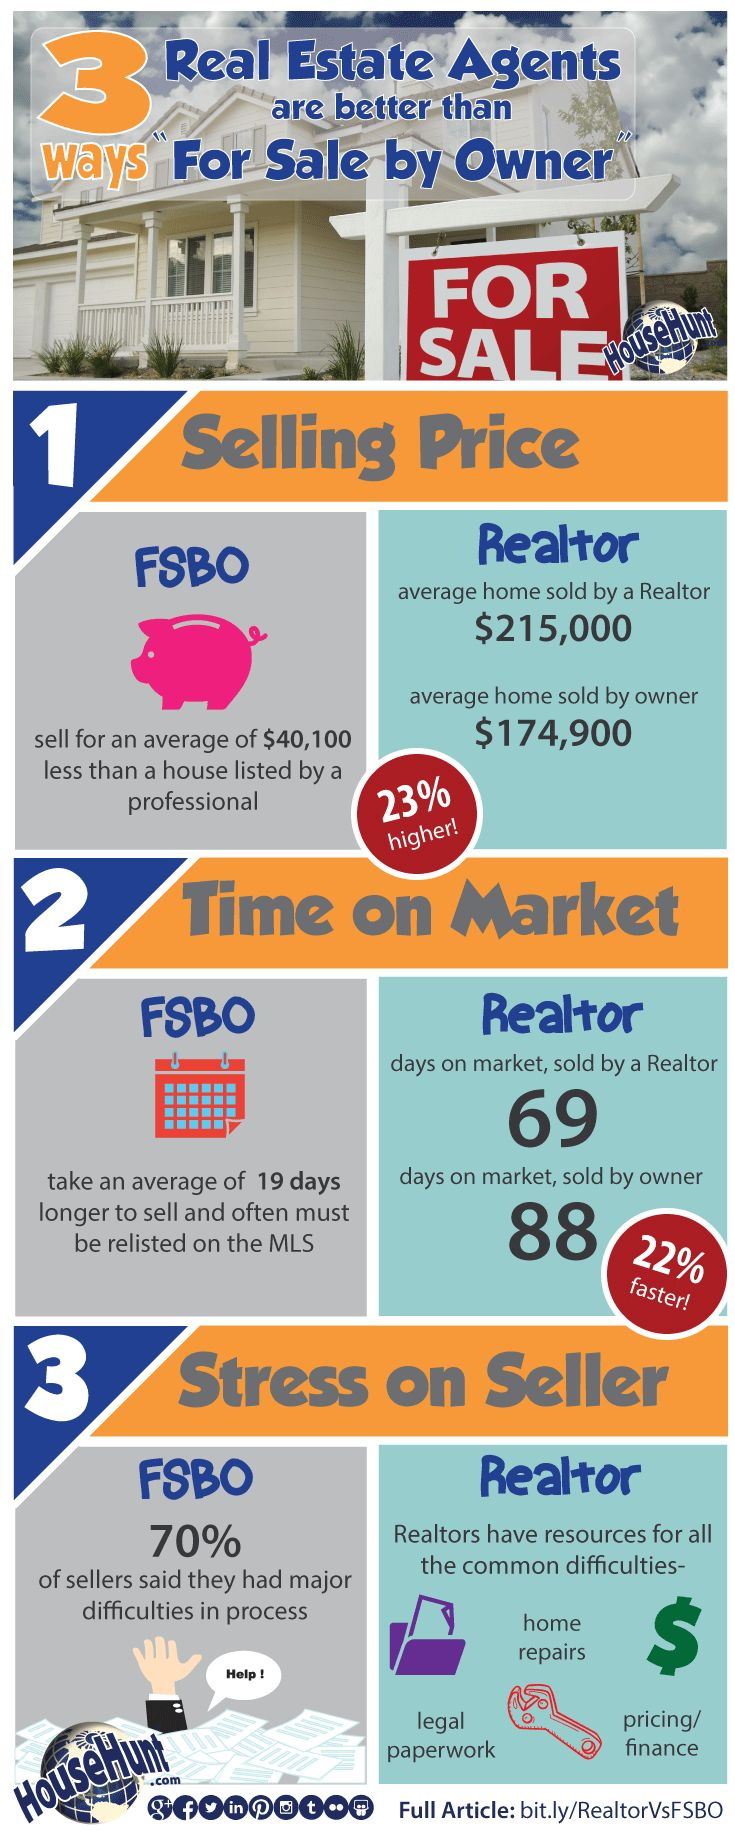 Selling Your Home - Private Sale vs Real Estate Agent - Infographic Stats Latest Posts Winnipeg Home Selling News & Tips